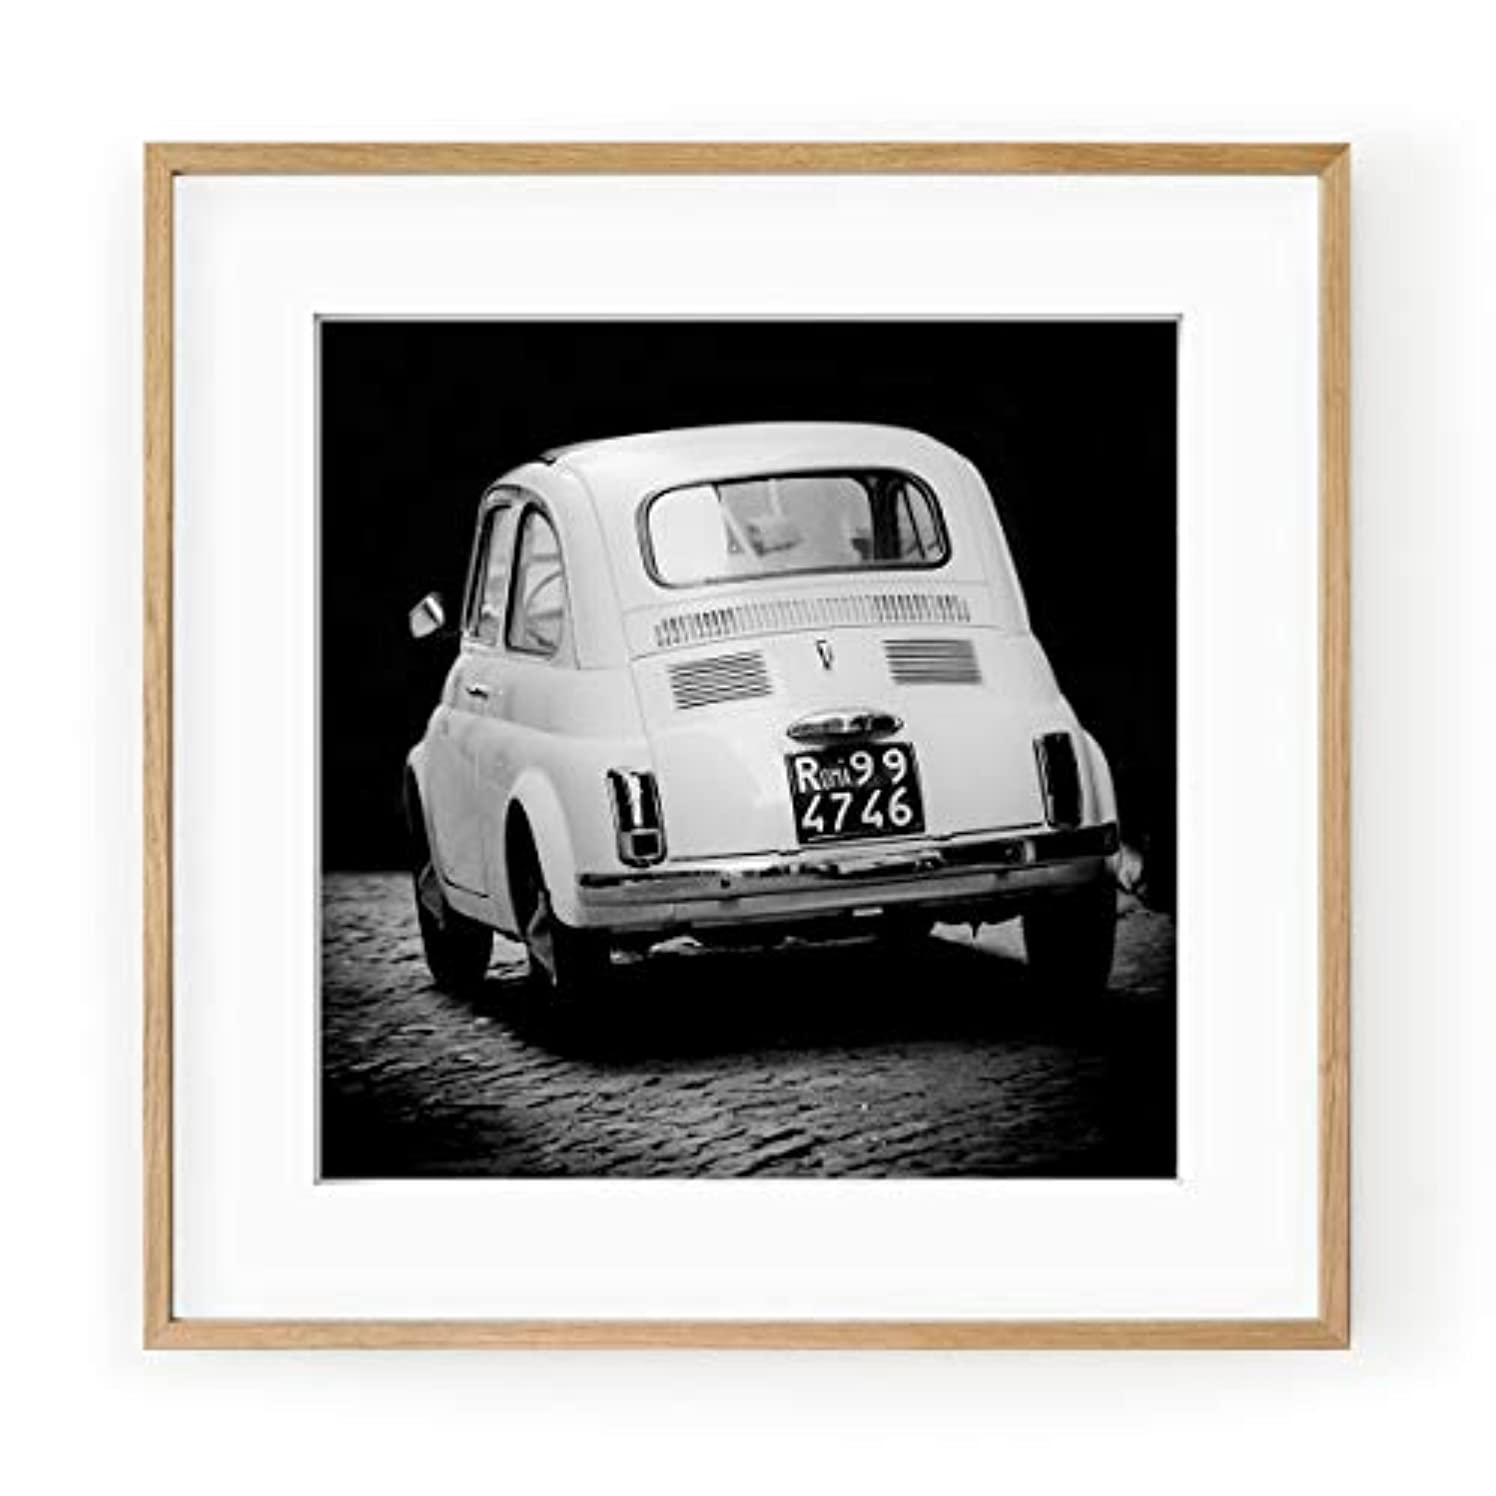 Fiat 500 Black and White Solid Oak Natural Frame with Mount, Multicolored, 50x50